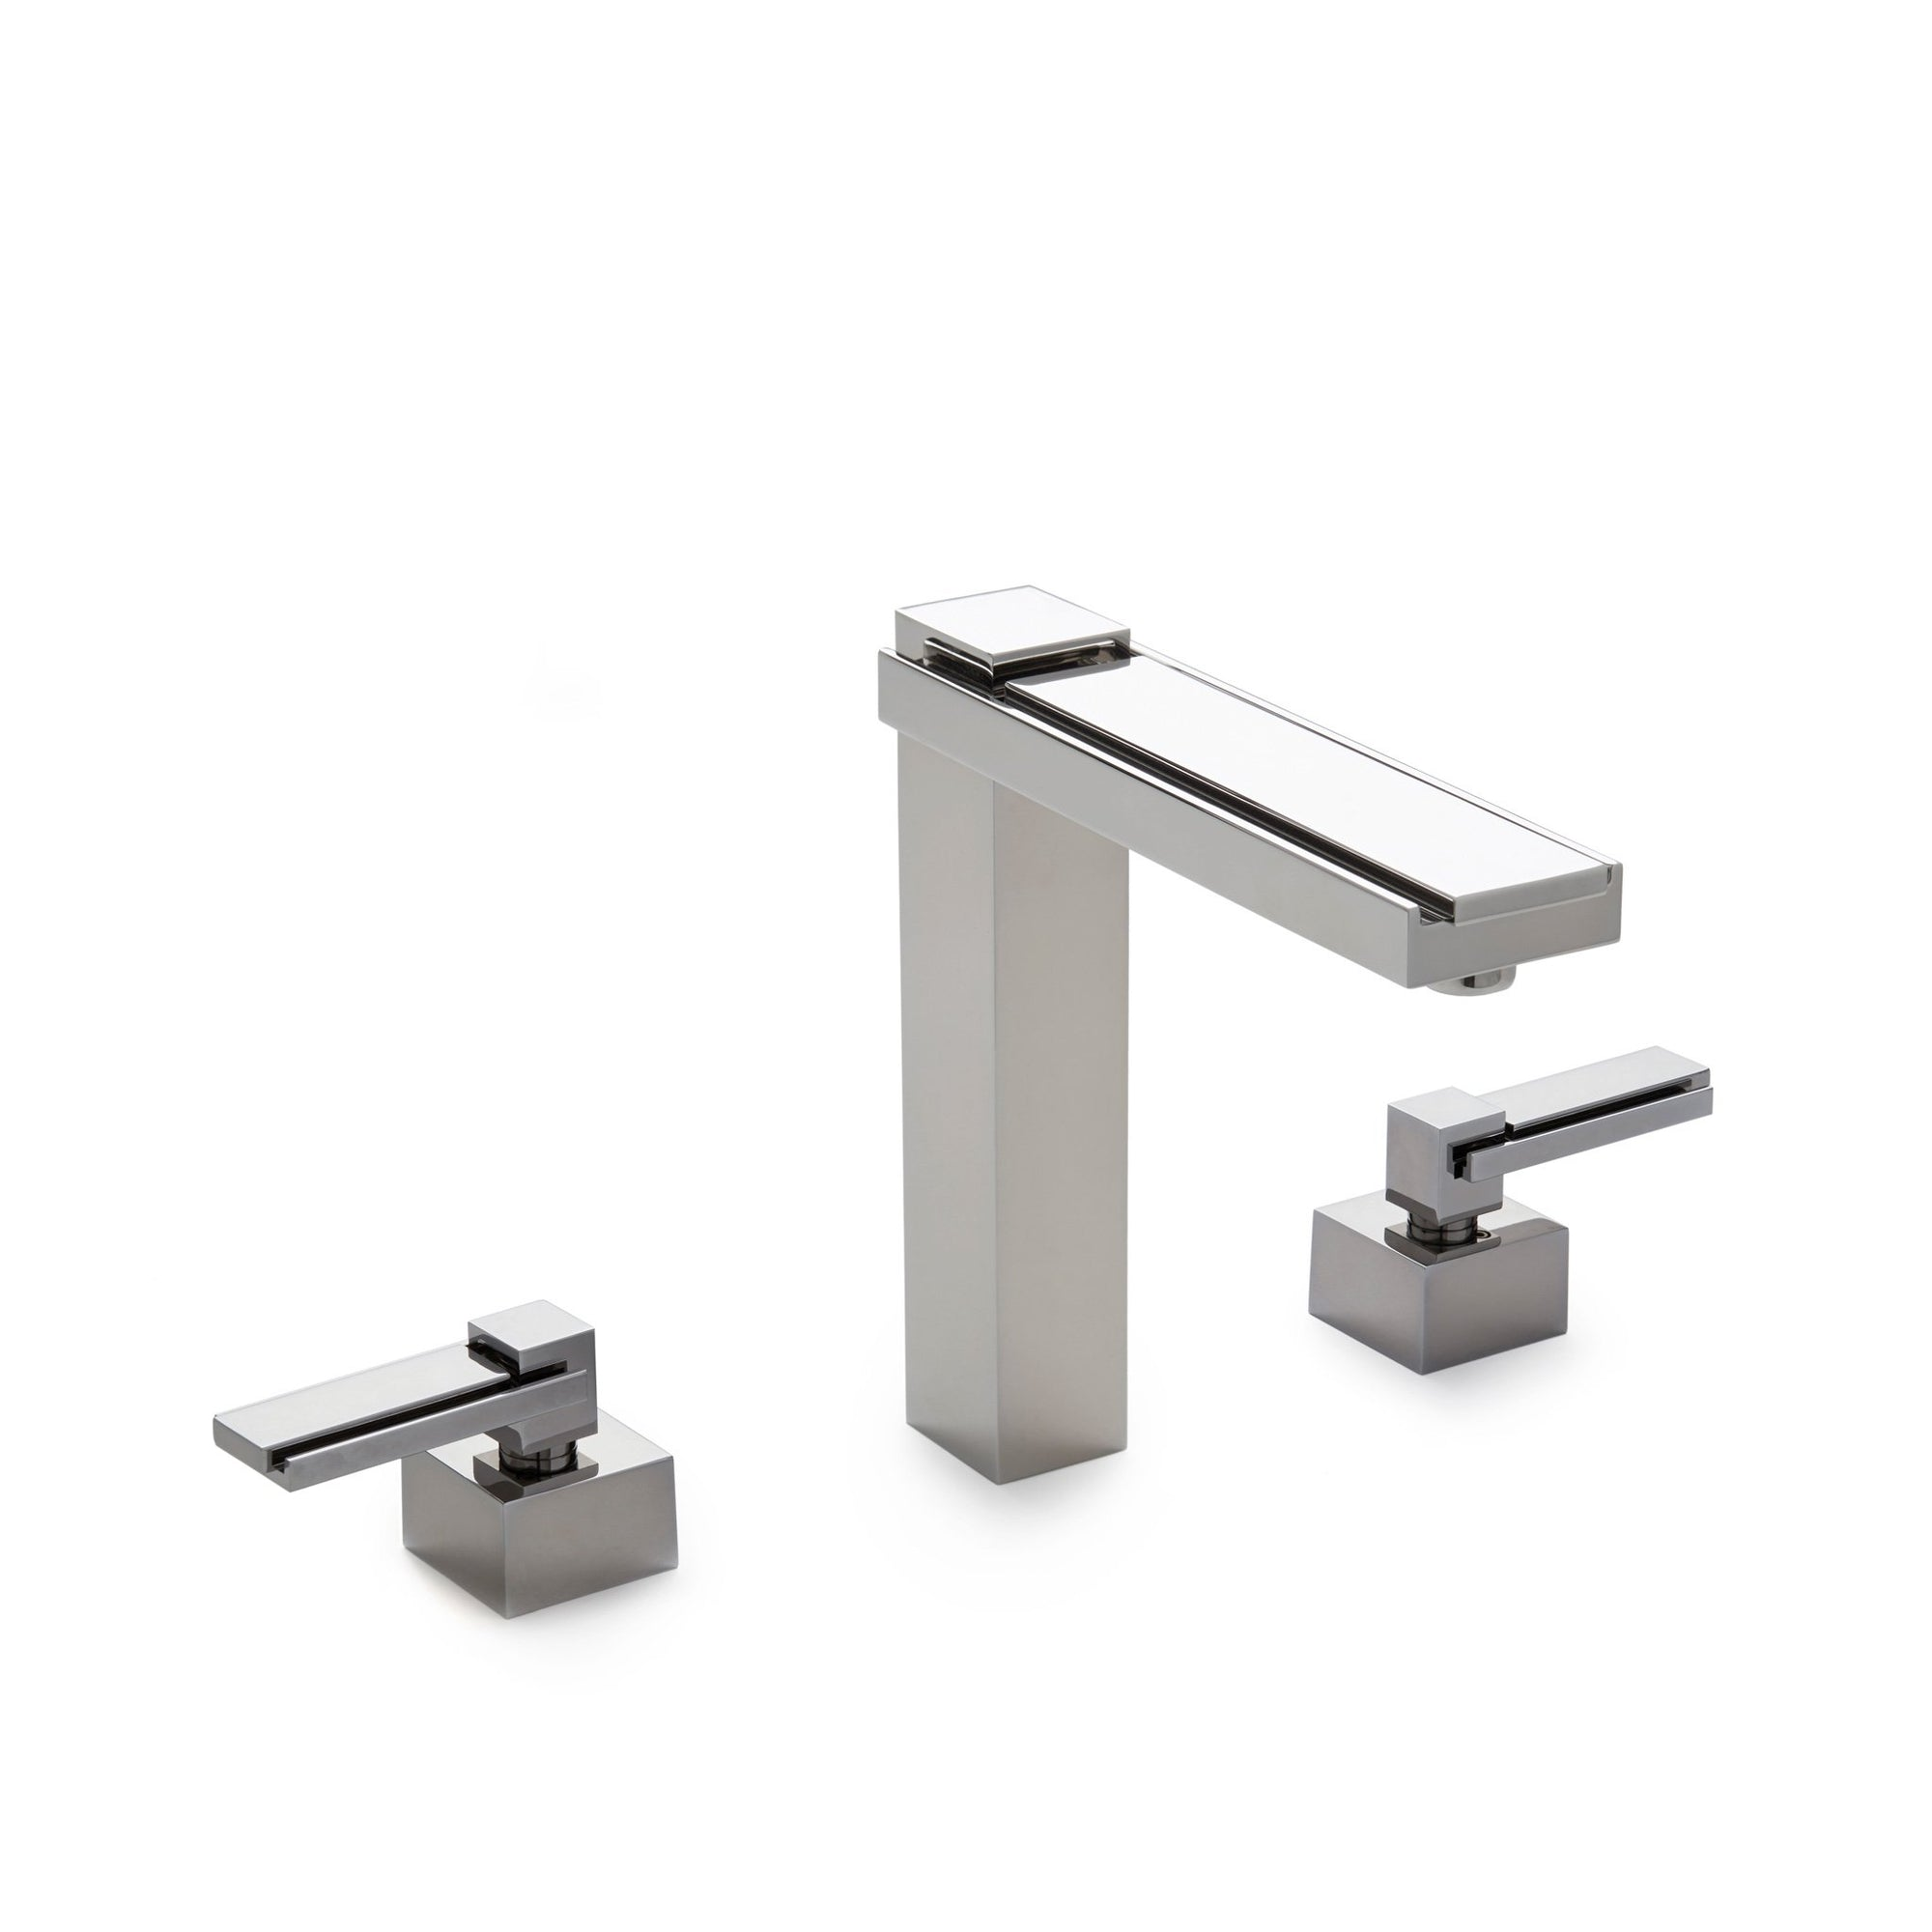 2020BAR801-CP Sherle Wagner International Arco with Apollo Bar Set in Polished Chrome metal finish